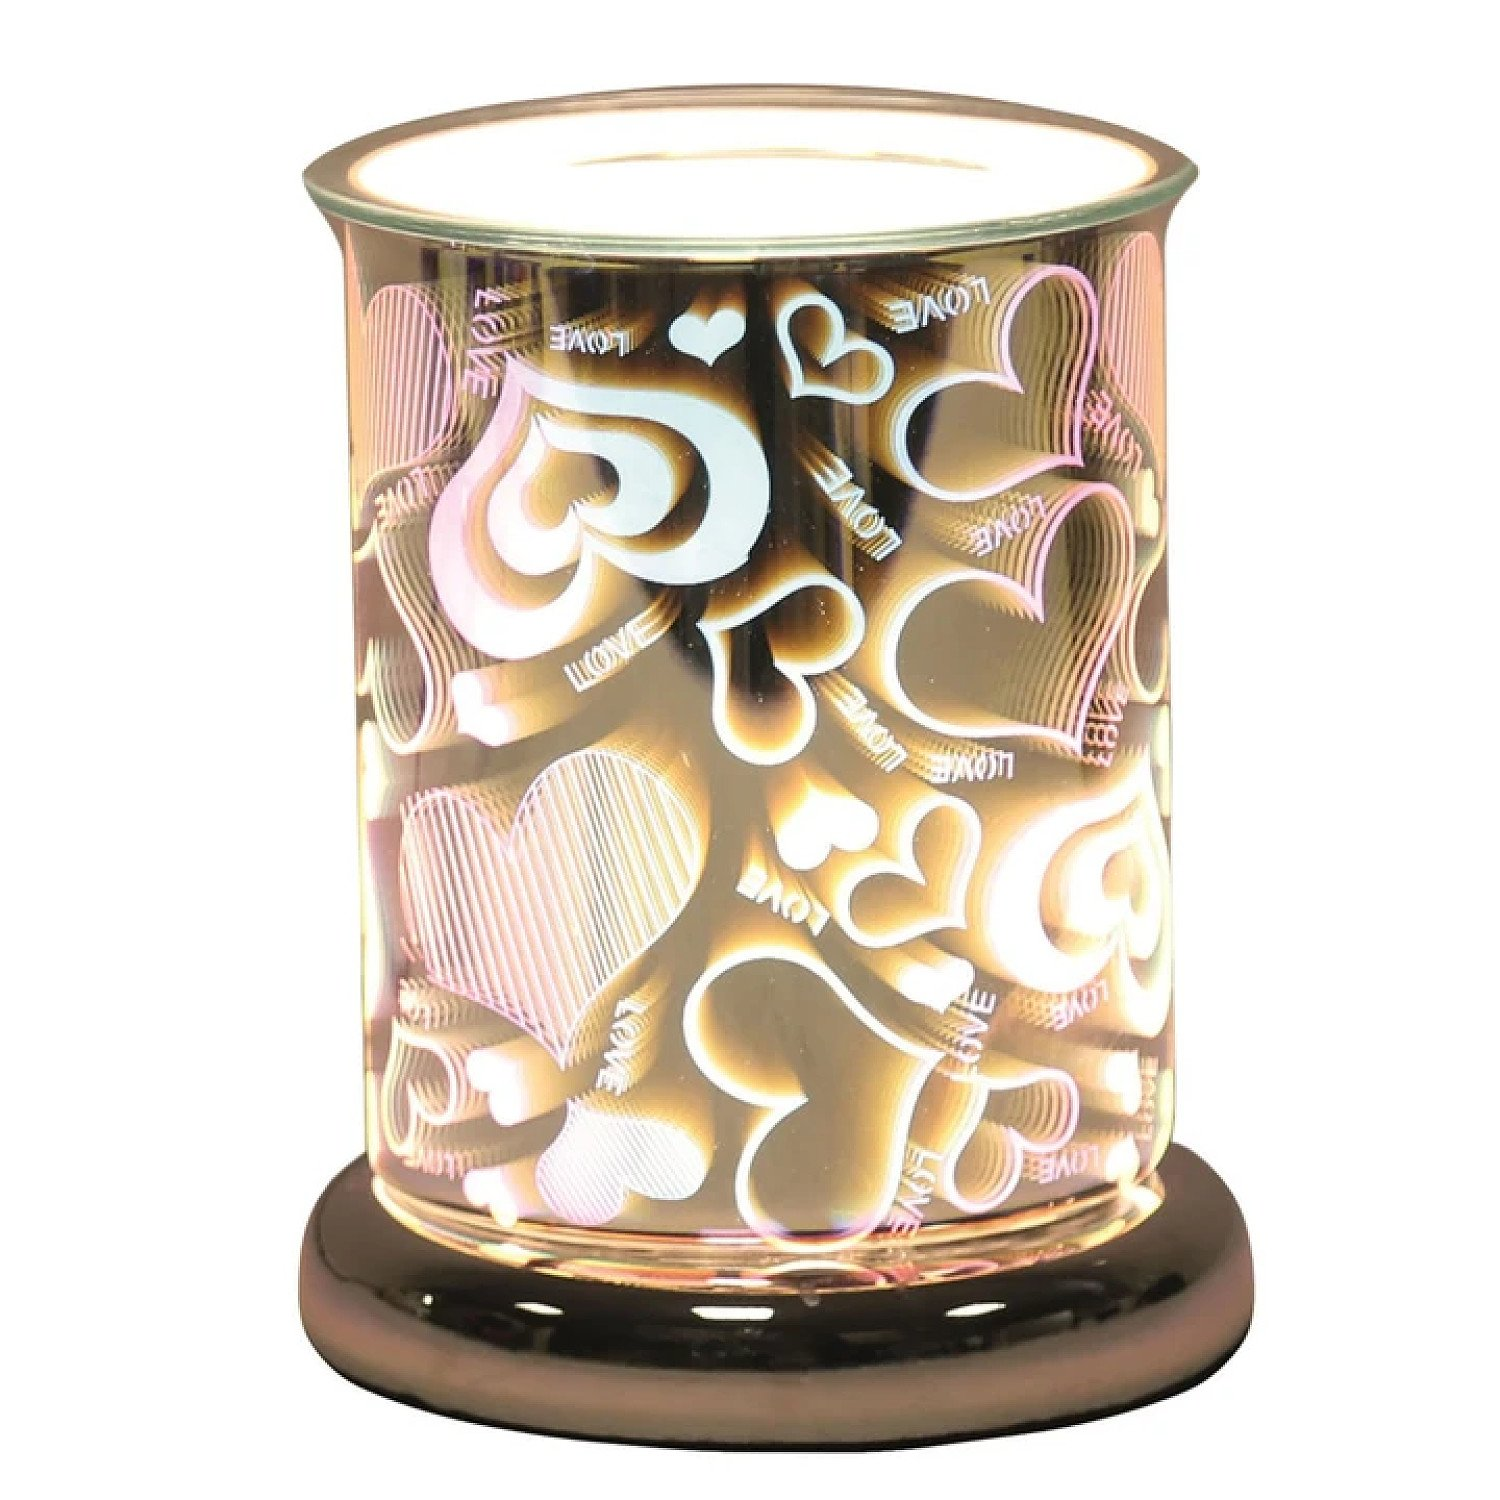 (Love - Cylinder) Oval 3D Lights Scented Aroma Wax Burner Electric Touch Lamp Free Postage